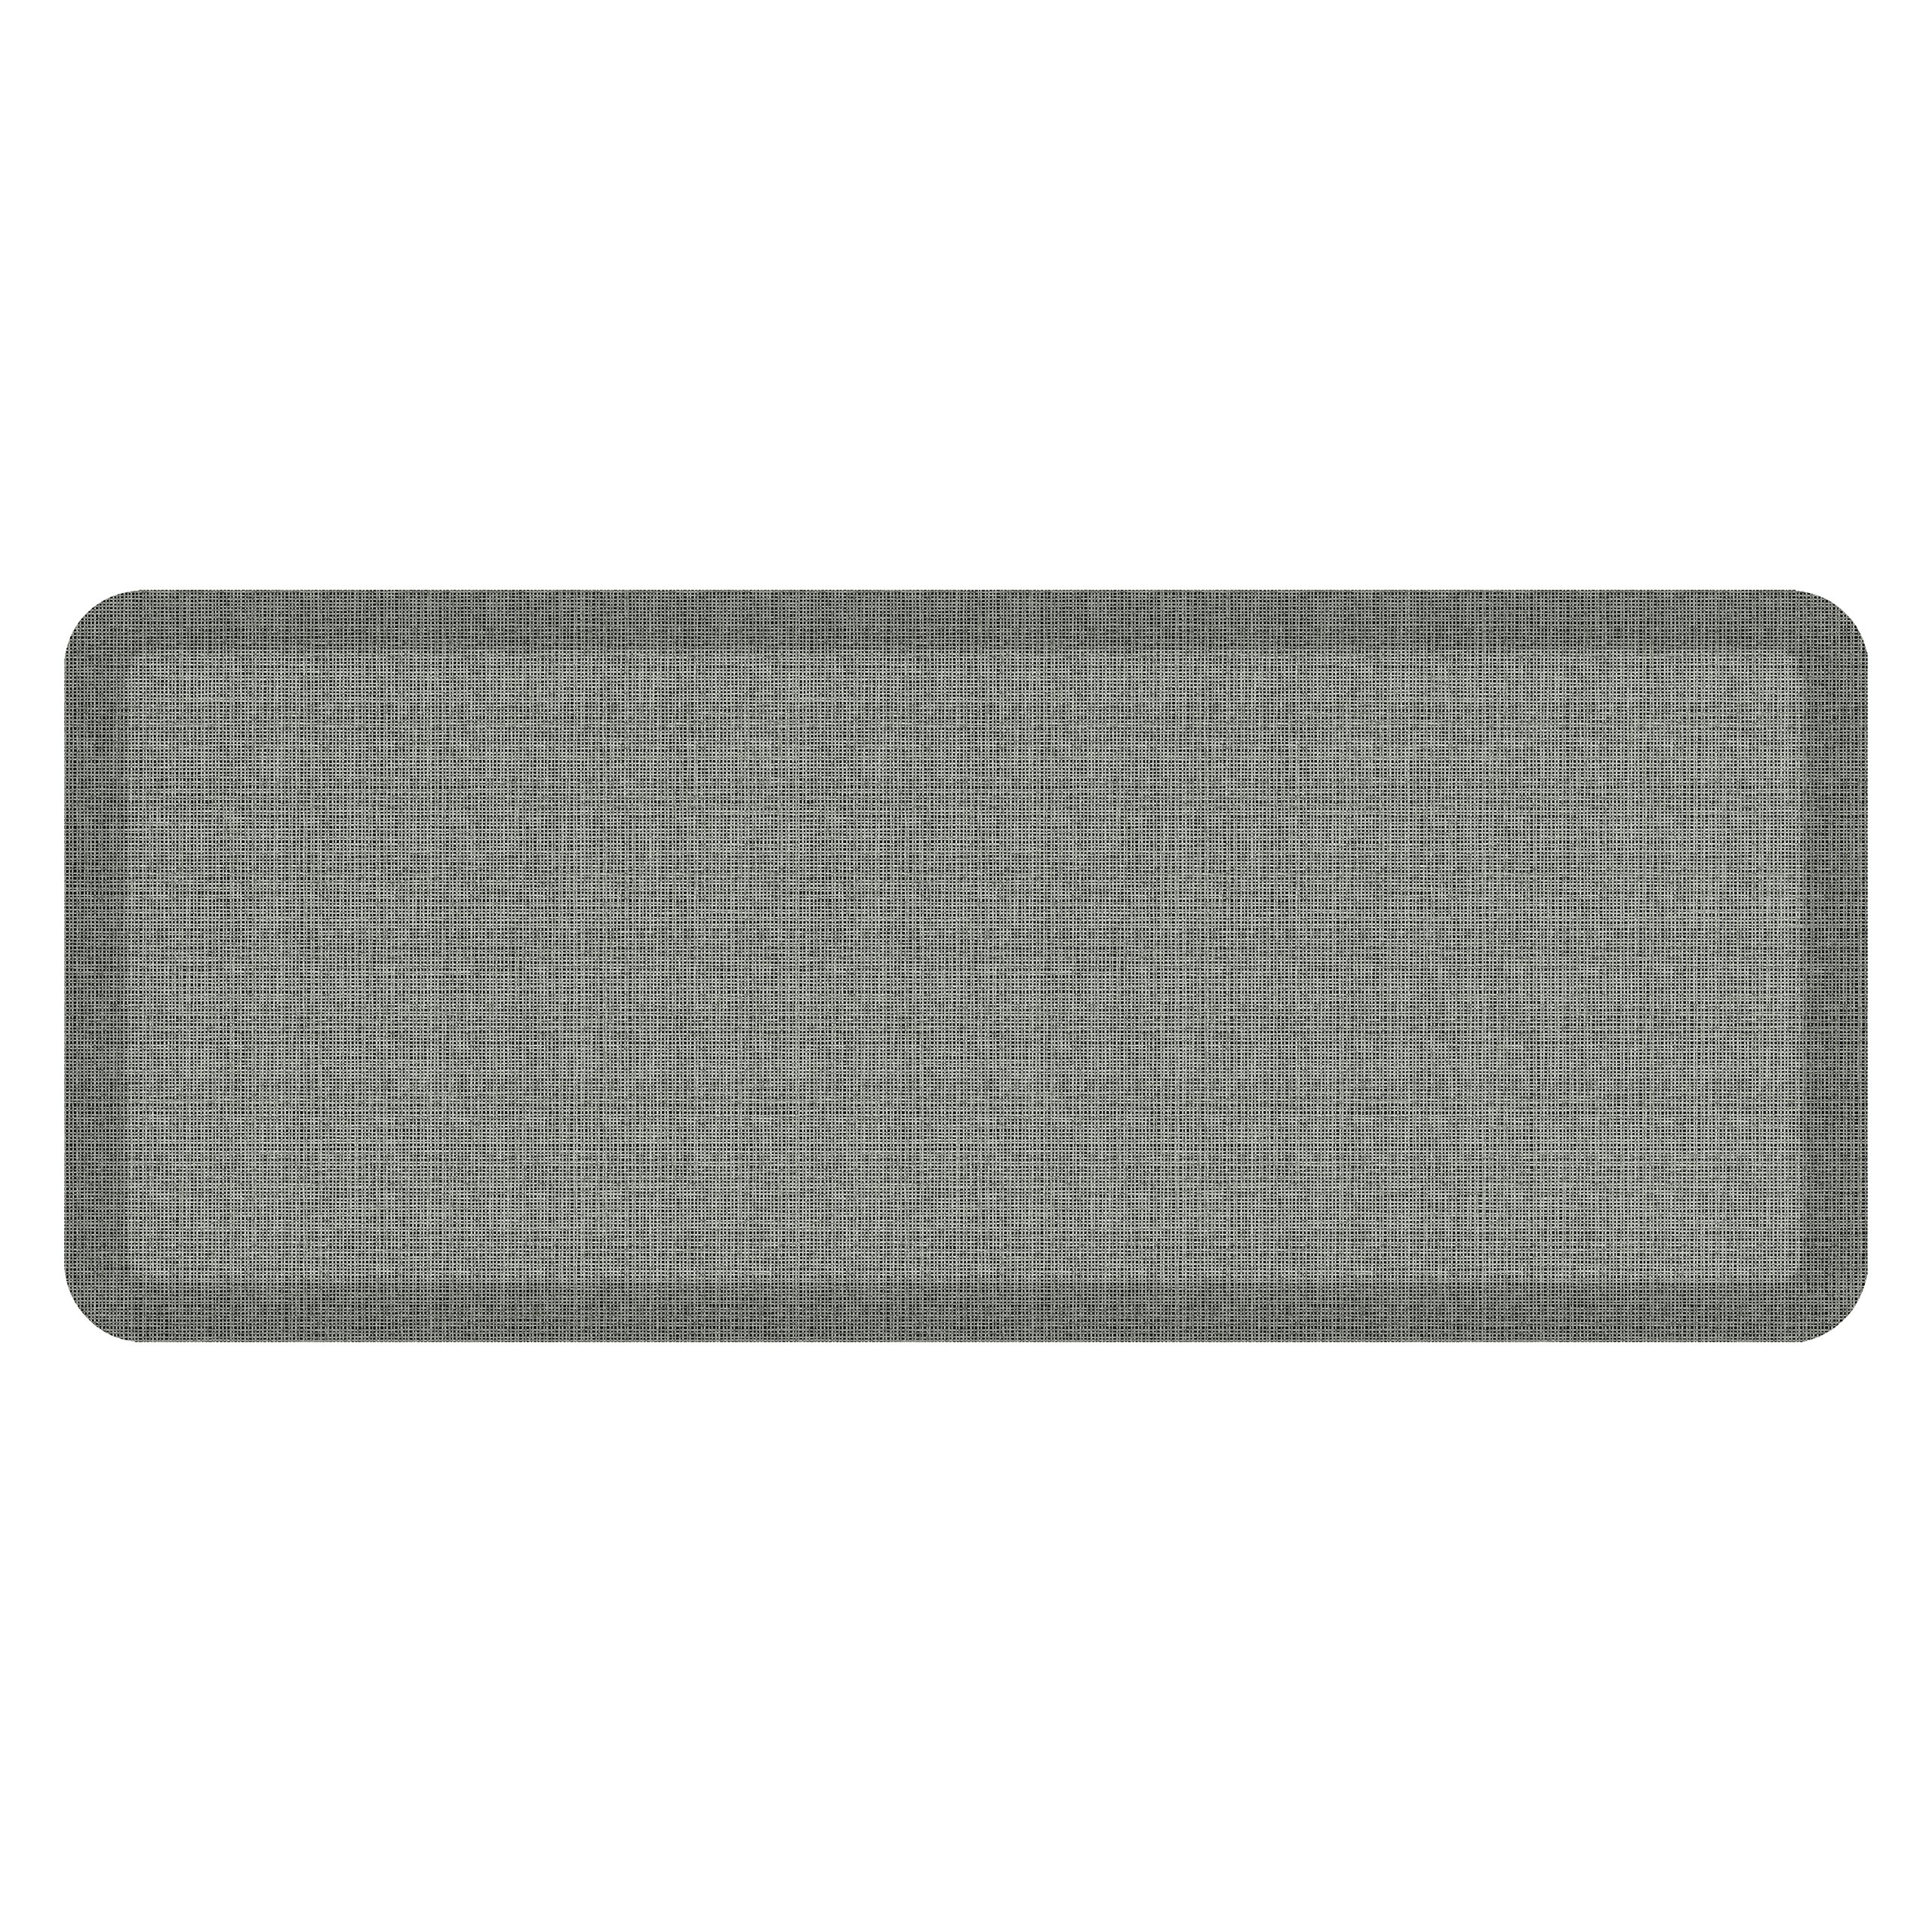 """NewLife by GelPro Anti-Fatigue Designer Comfort Kitchen Floor Mat, 20x48'', Tweed Grey Goose Stain Resistant Surface with 3/4"""" Thick Ergo-foam Core for Health and Wellness"""